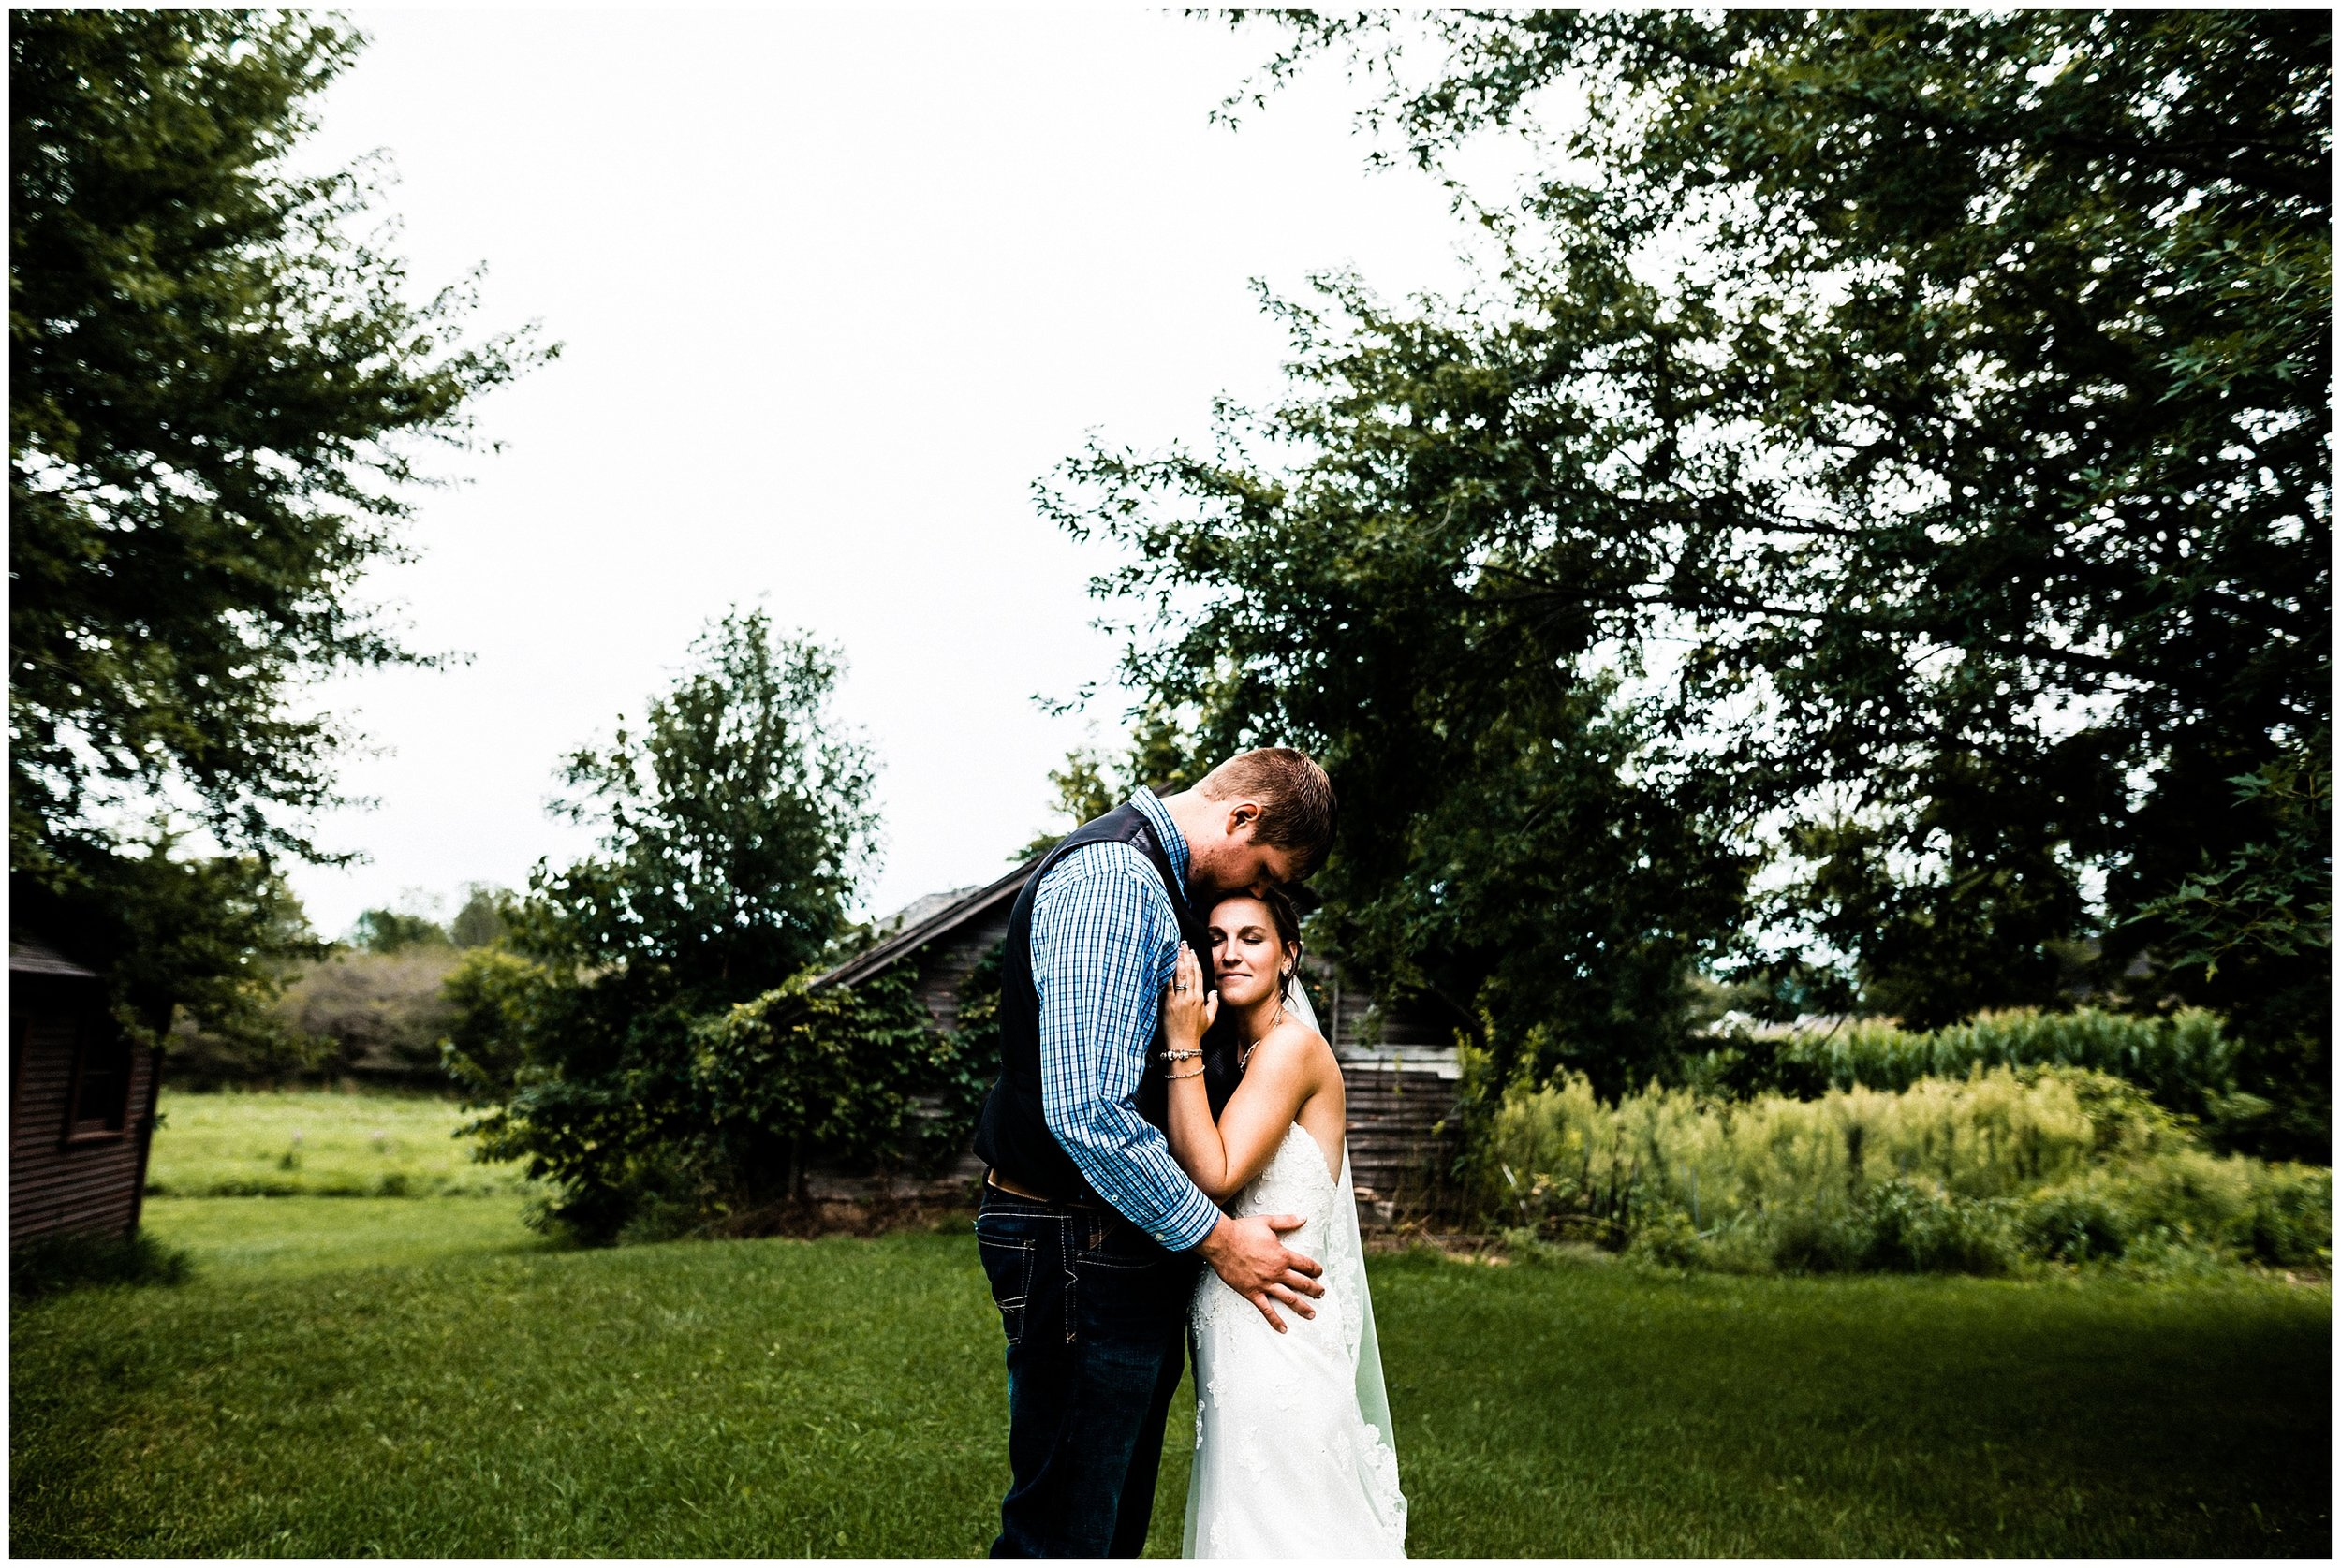 Ben + Rachel | Just Married #kyleepaigephotography_1093.jpg